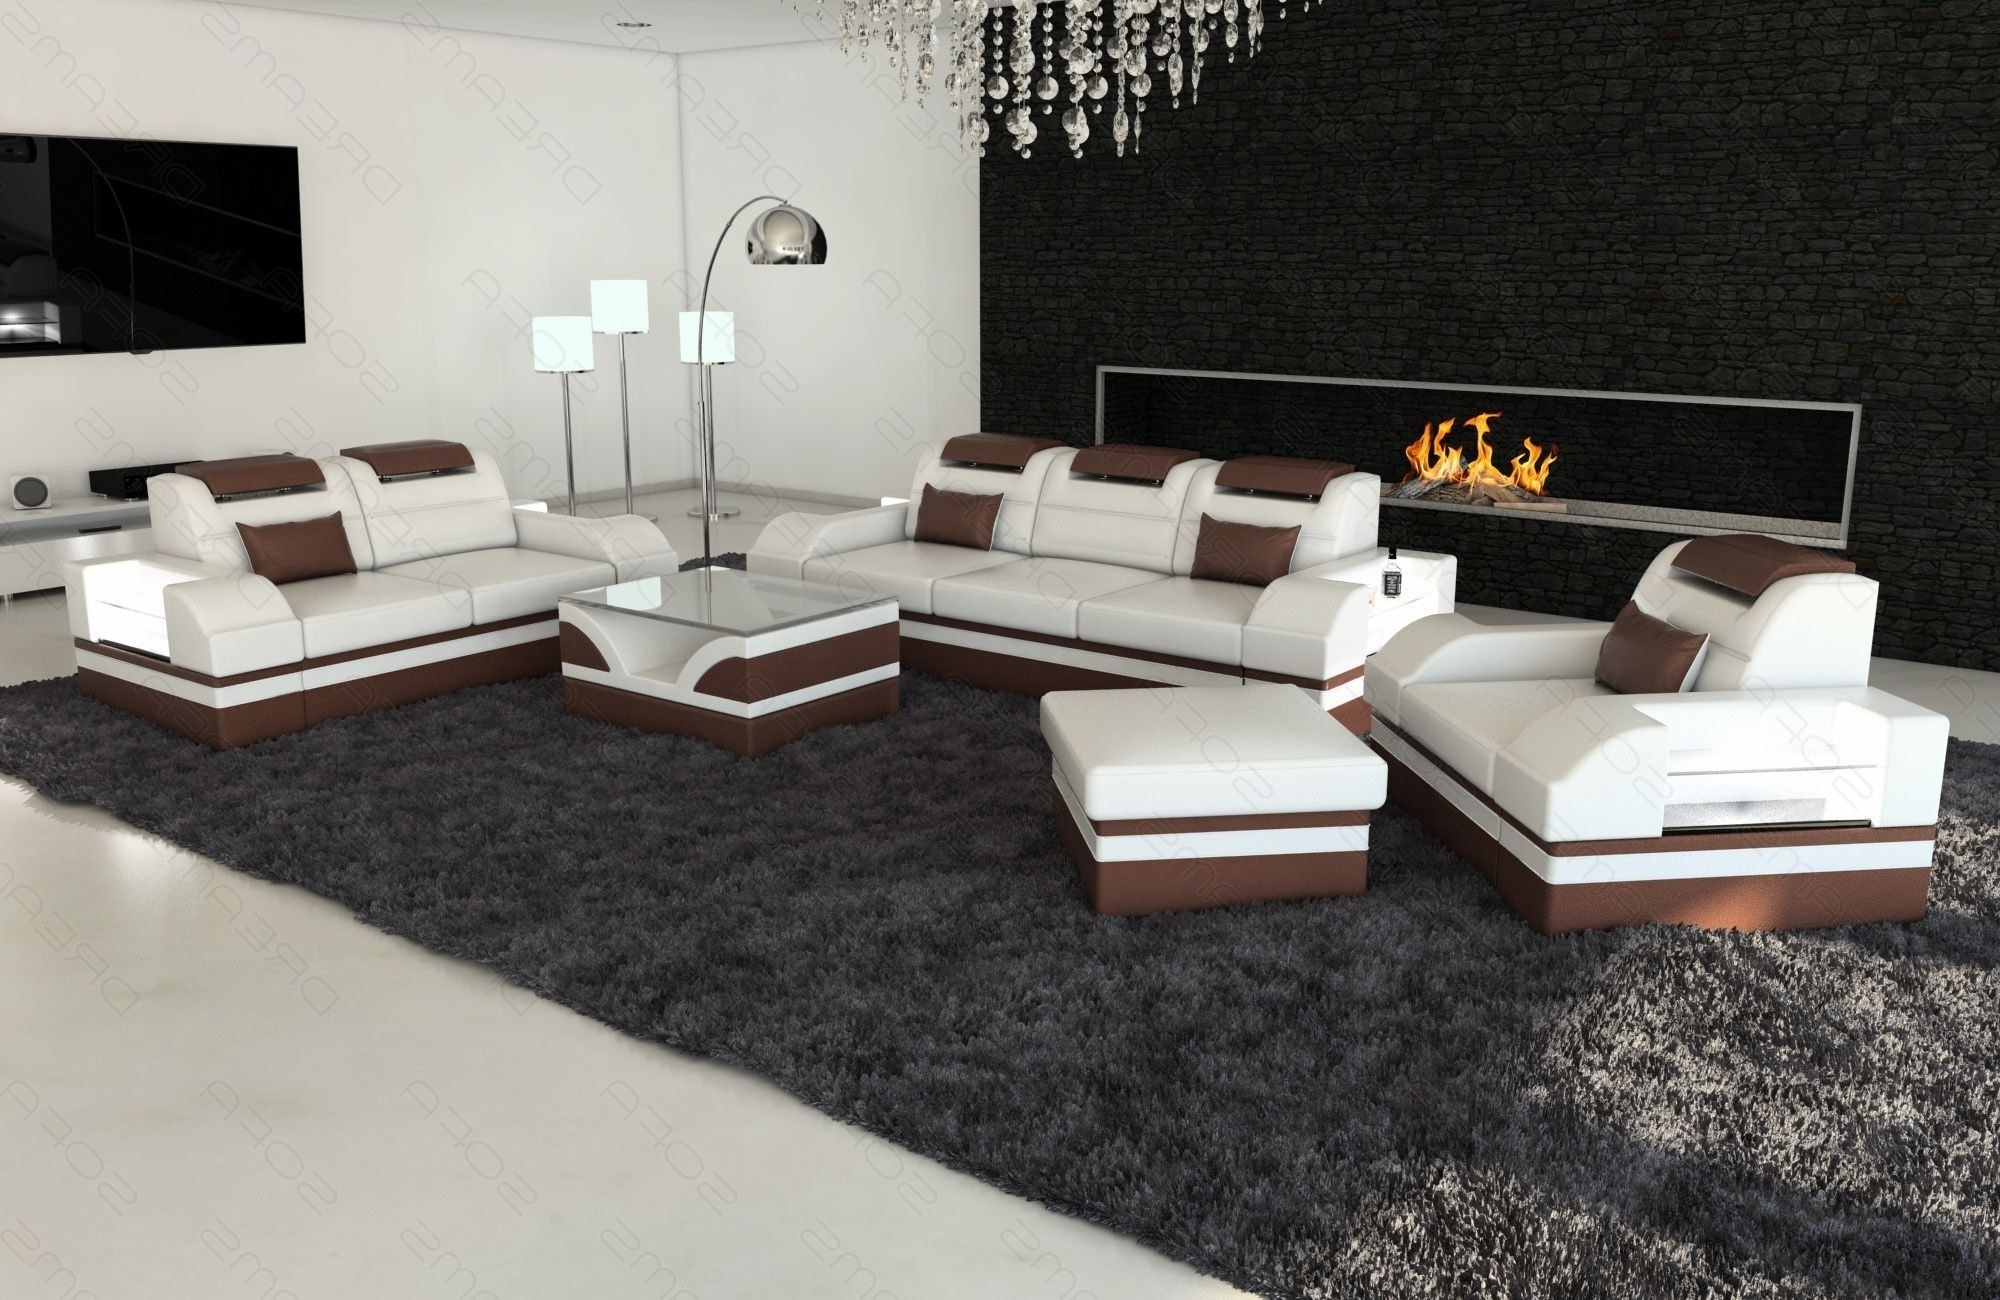 Sectional Sofa 2 3 1 San Francisco Led Within Widely Used San Francisco Sectional Sofas (View 11 of 15)